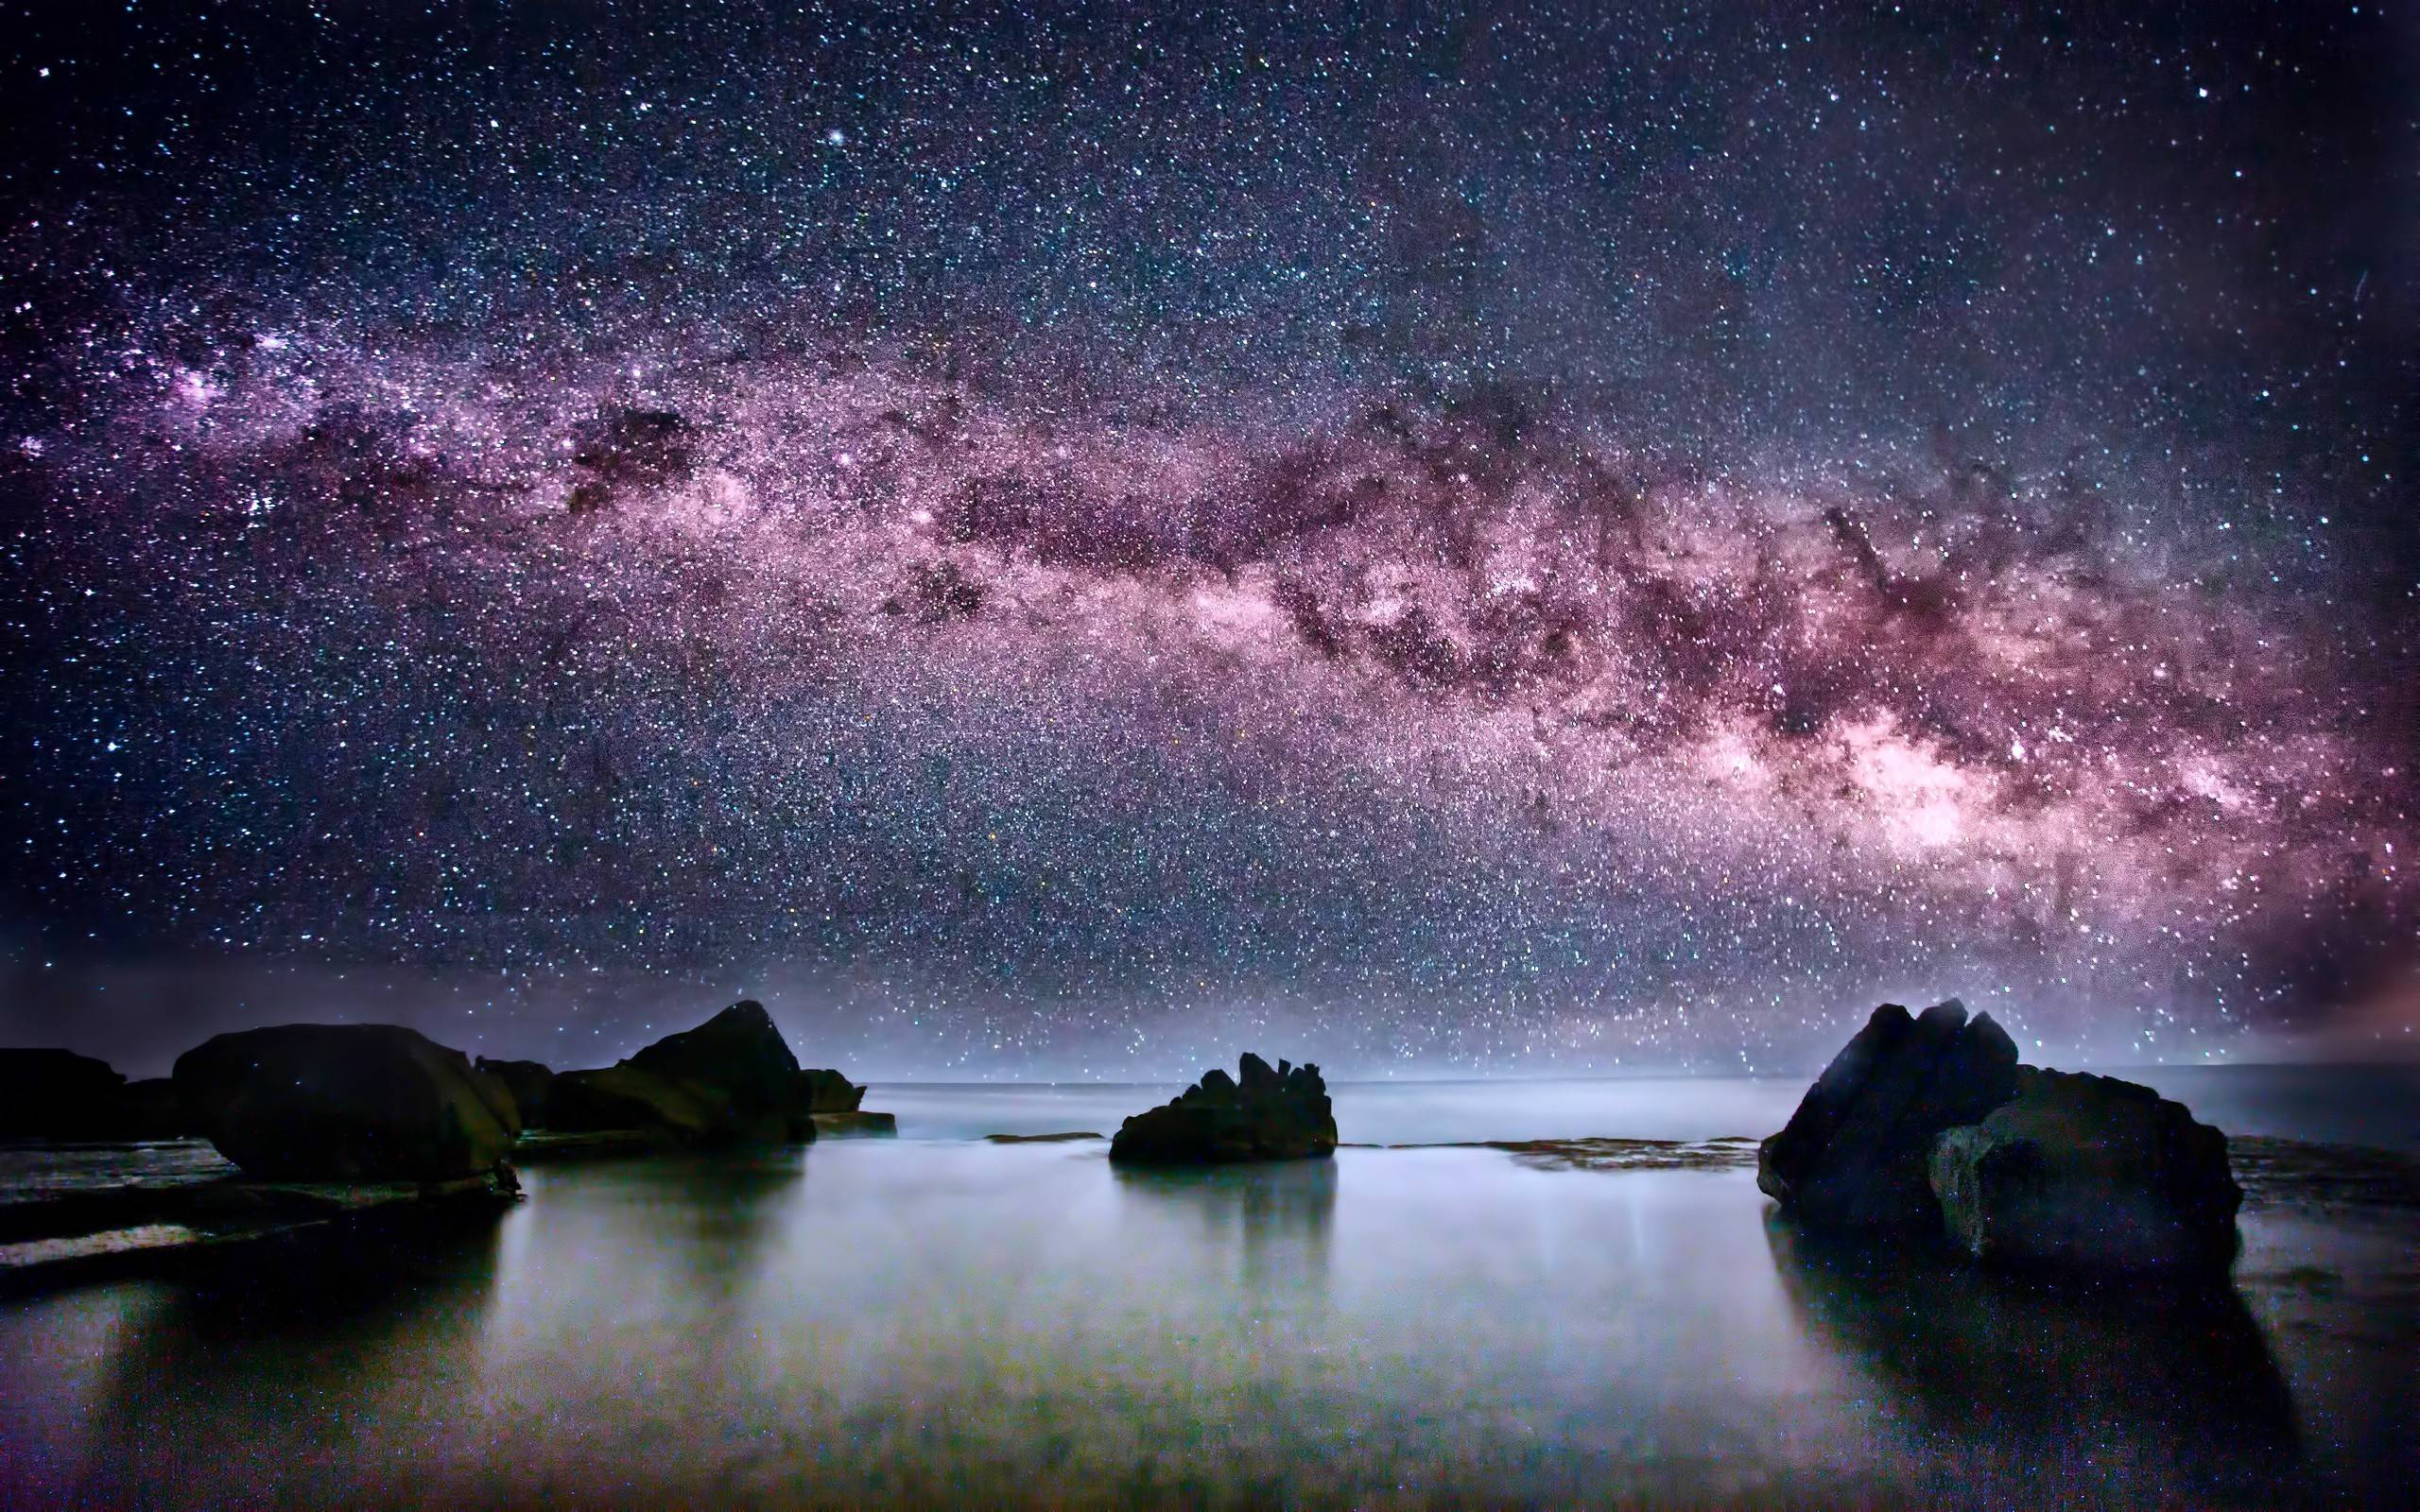 Milky Way Wallpapers - Full HD wallpaper search